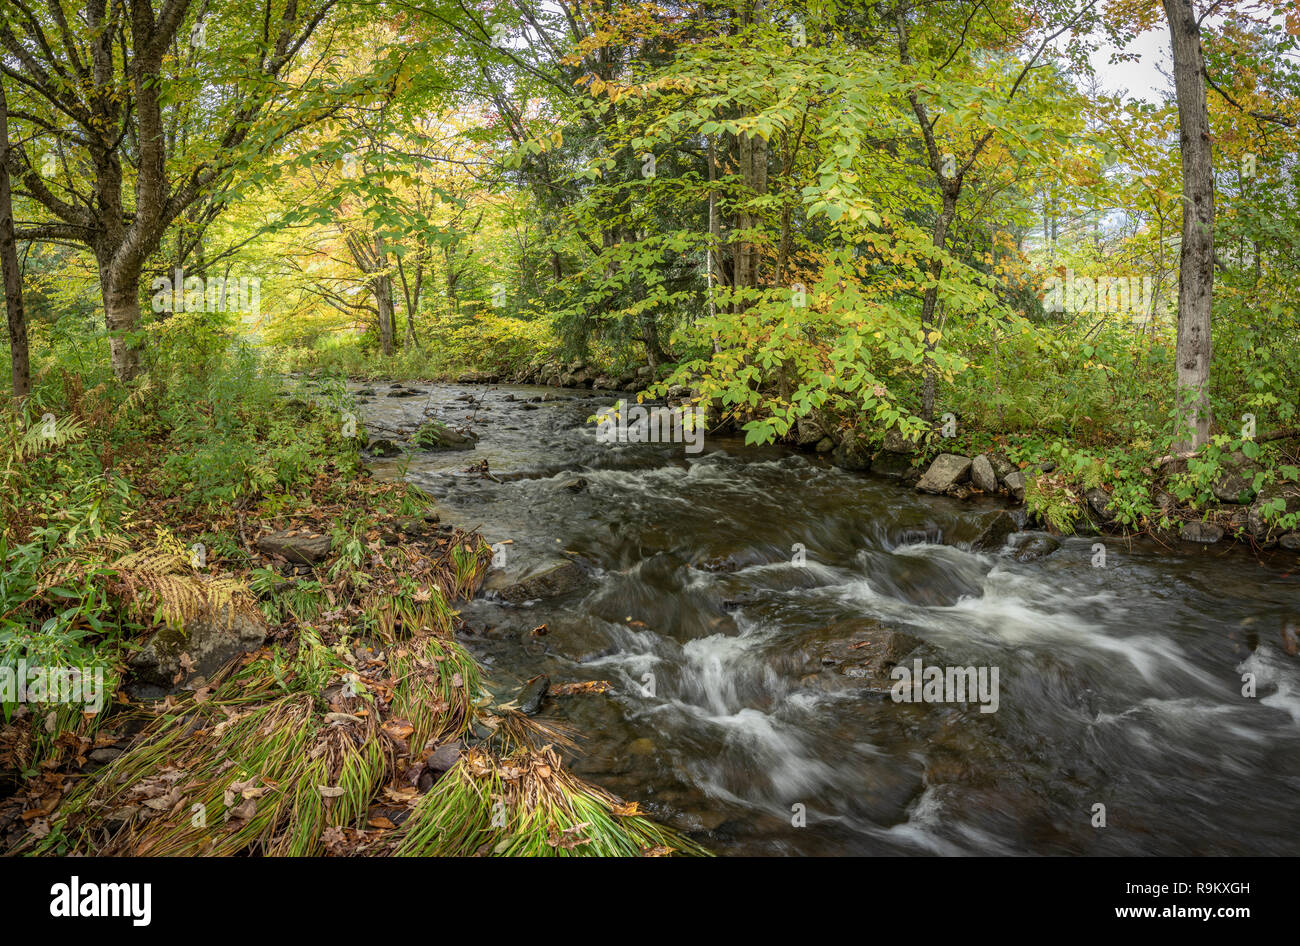 Thundering Brook Trail, Green Mountain National Forest, Woodstock, VT - Stock Image